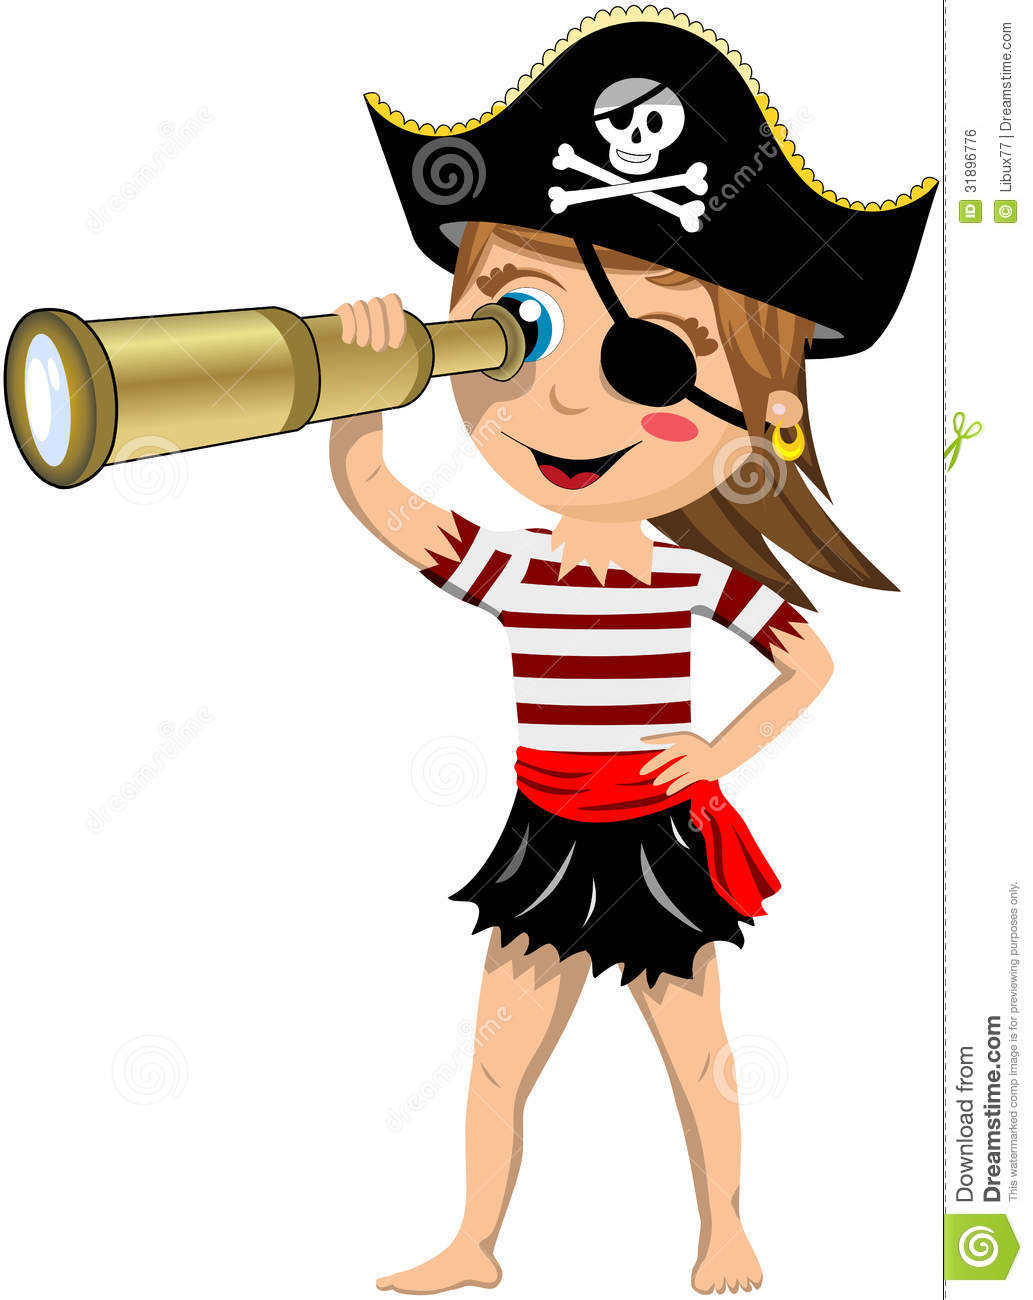 Cartoon pirates clipart graphic transparent library Pirates Cartoon Pictures | Free download best Pirates Cartoon ... graphic transparent library